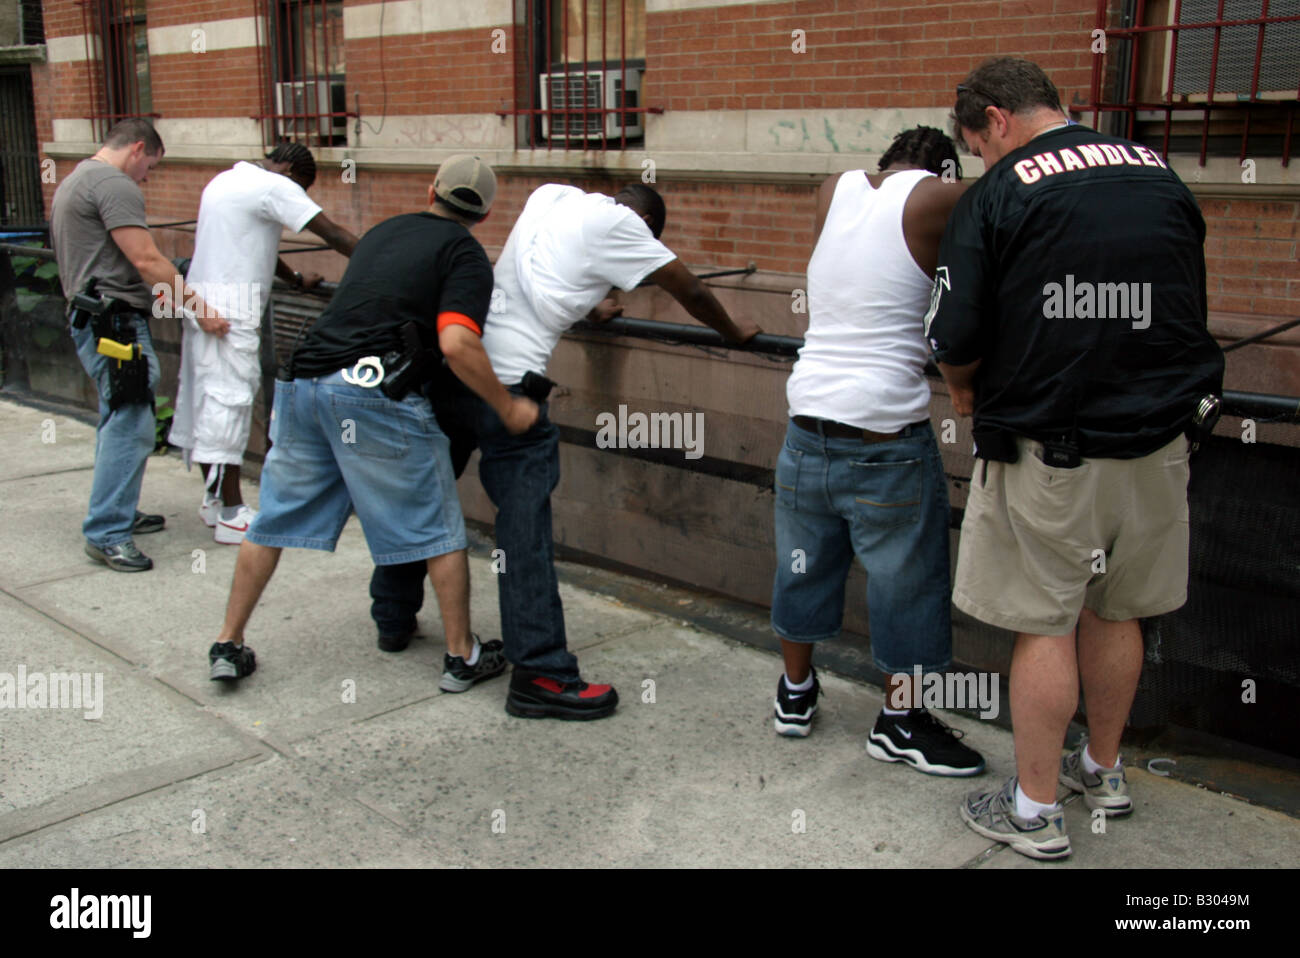 Plain clothes police detectives searching suspects in Harlem New York City - Stock Image